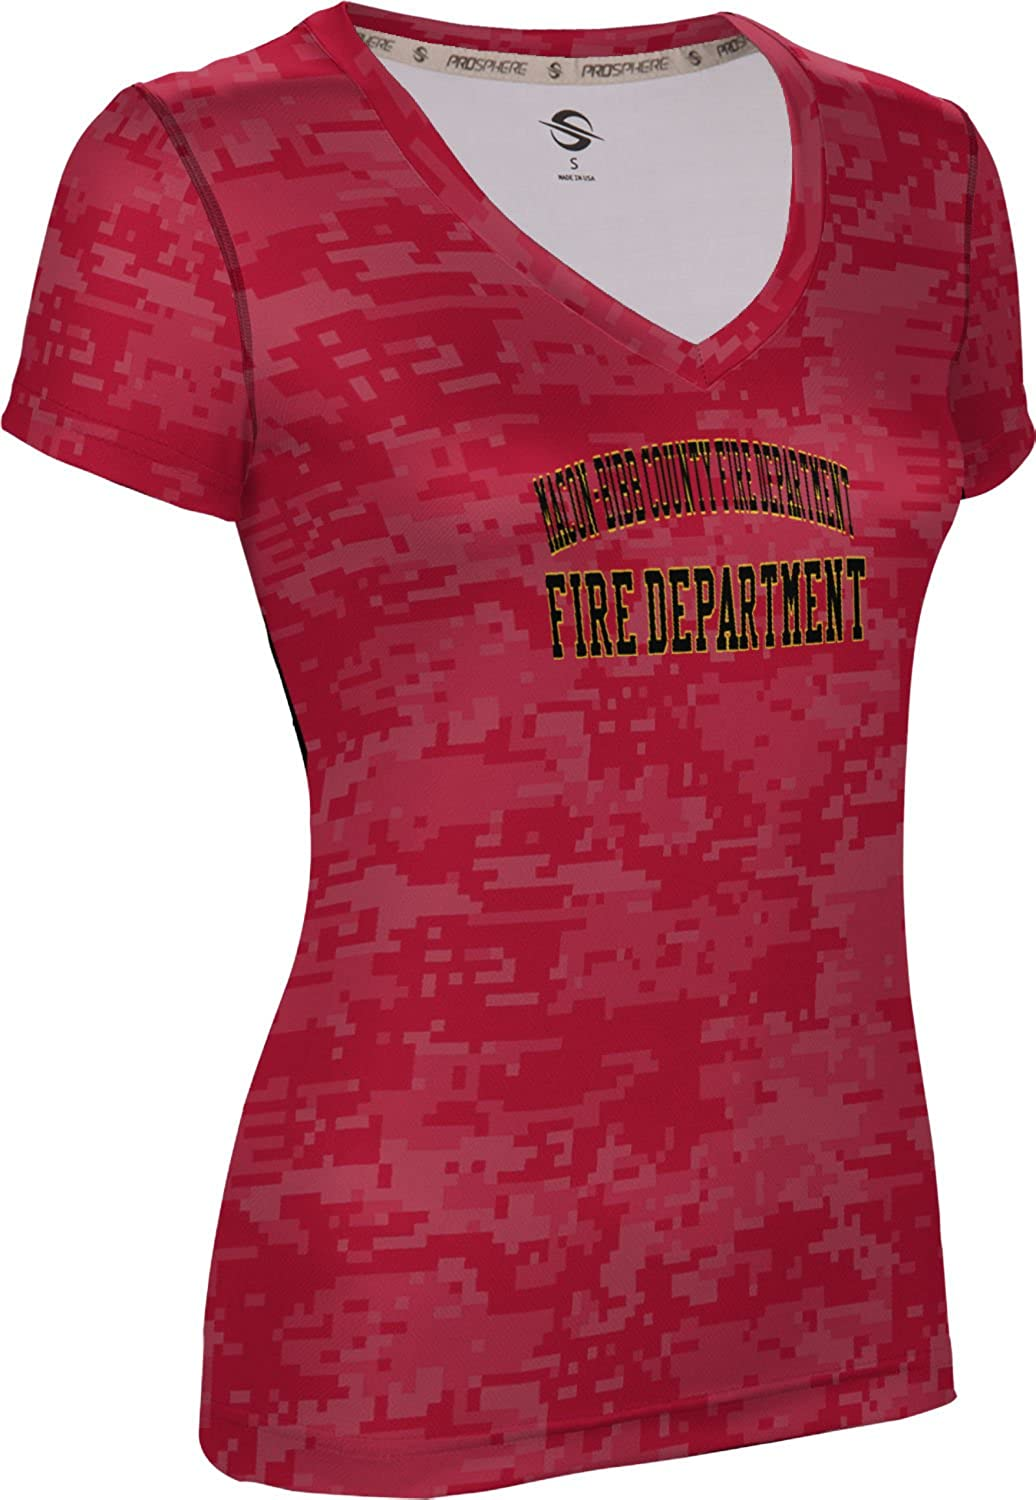 Women's Macon-Bibb County Fire Department Digital SL V-Neck Training Tee